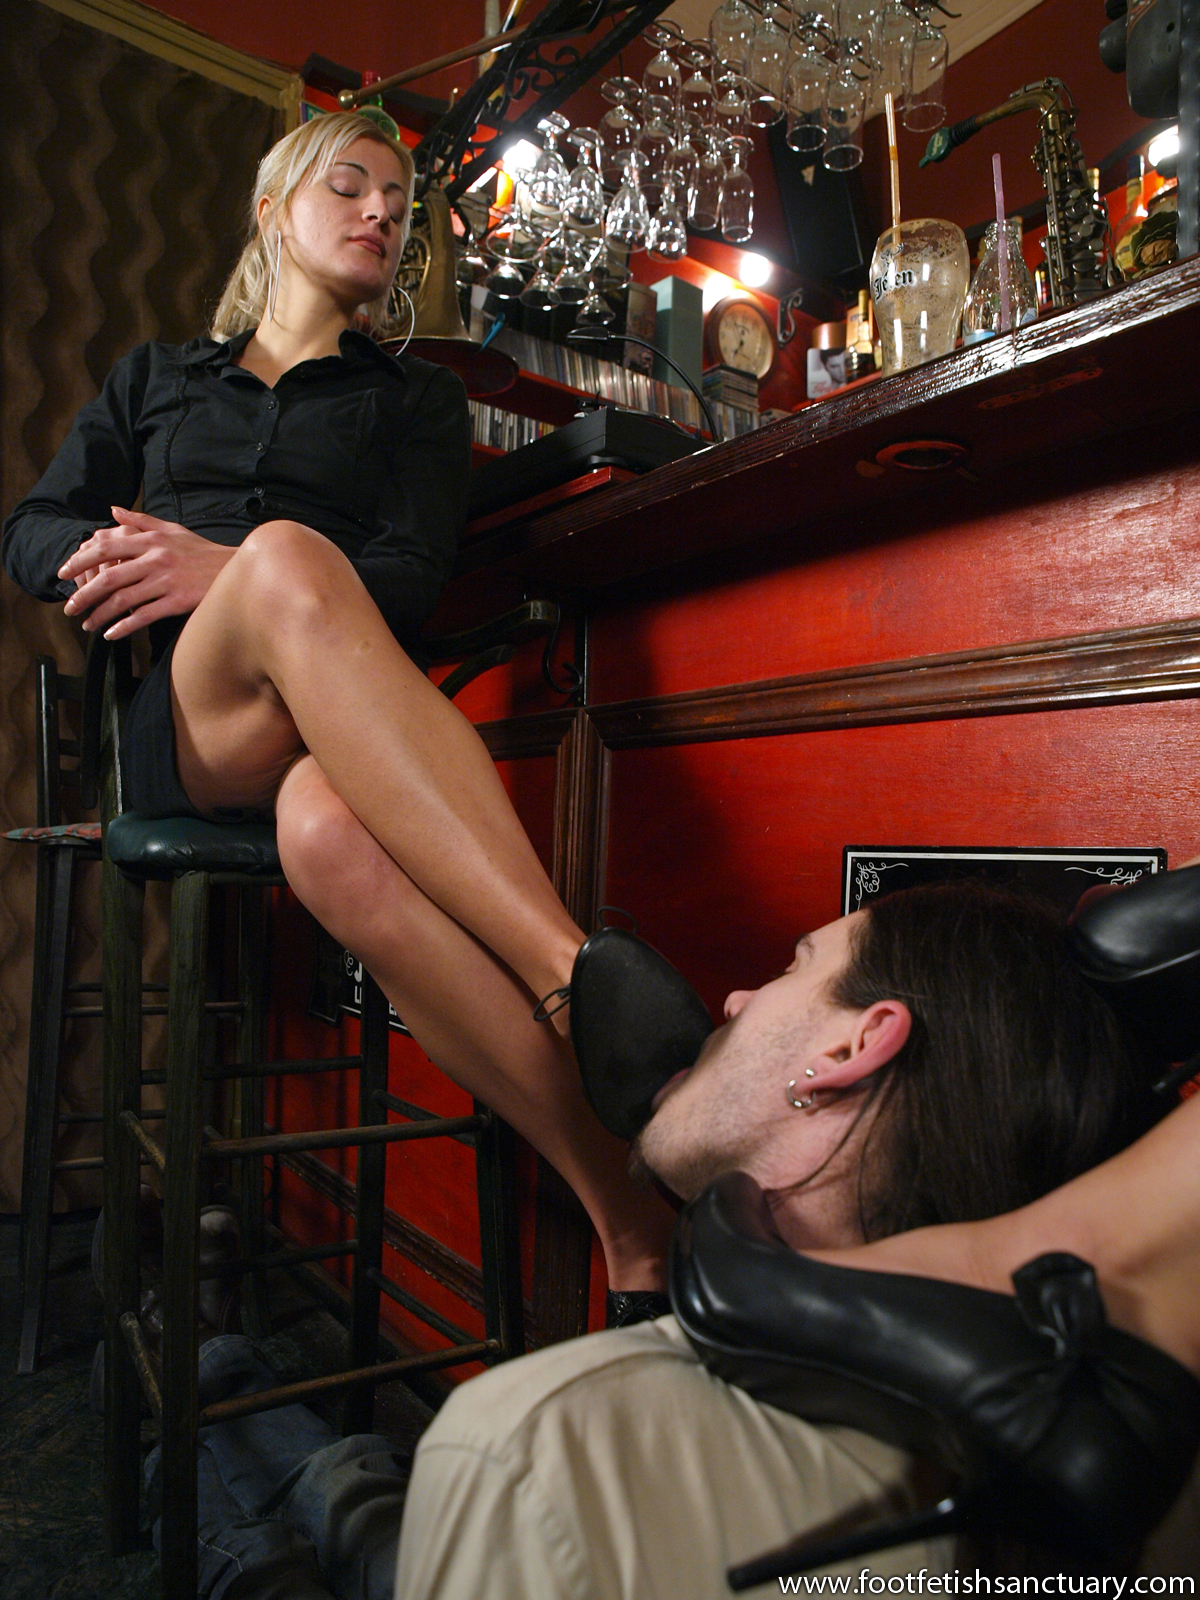 Superb Femdom  Foot Fetish Sanctuary Gallery 15  Smothering their feet over the slave in the bar